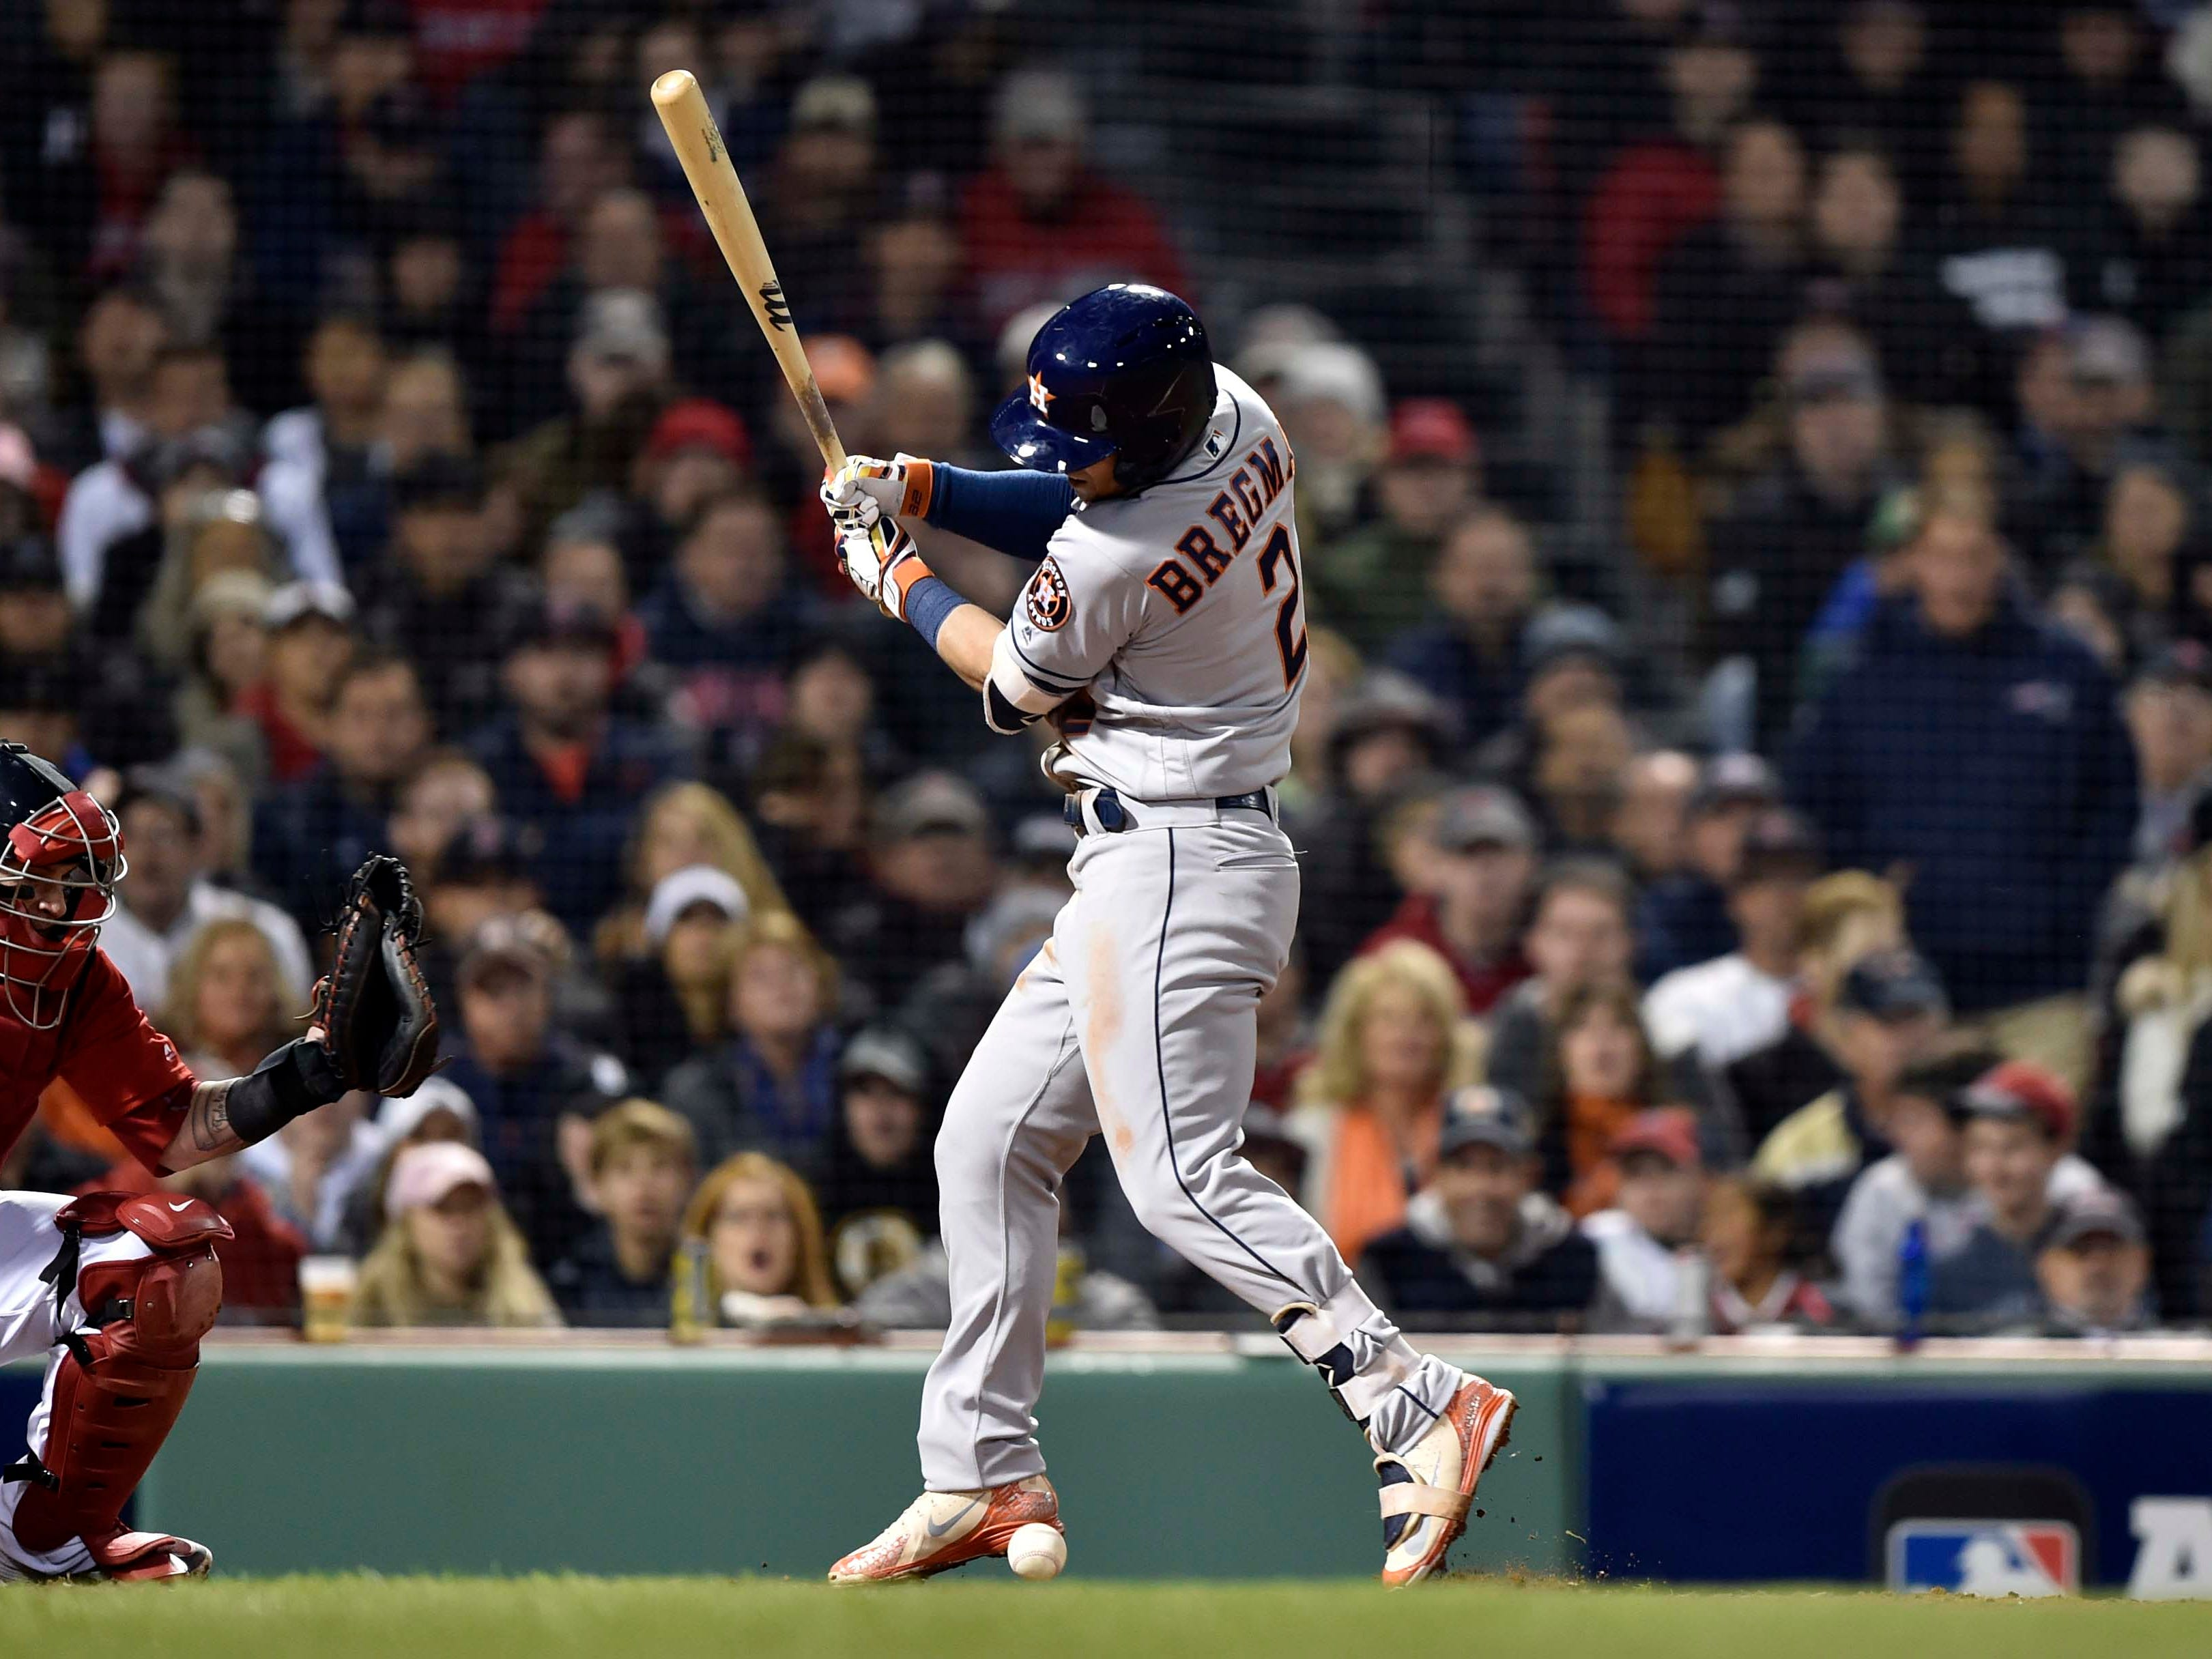 ALCS Game 1: Astros third baseman Alex Bregman is hit by a pitch from Joe Kelly in the fifth inning.